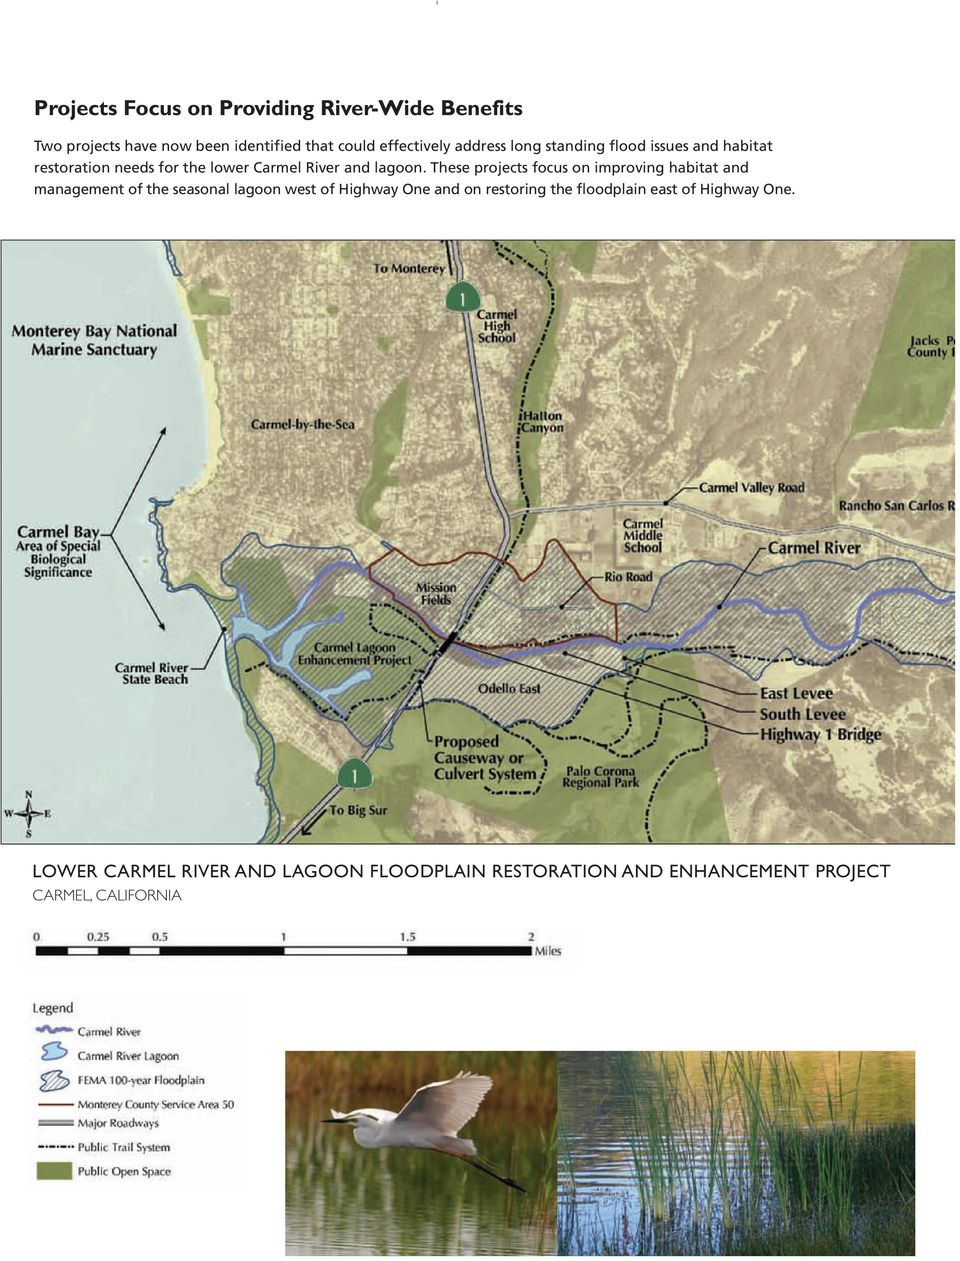 These projects focus on improving habitat and management of the seasonal lagoon west of Highway One and on